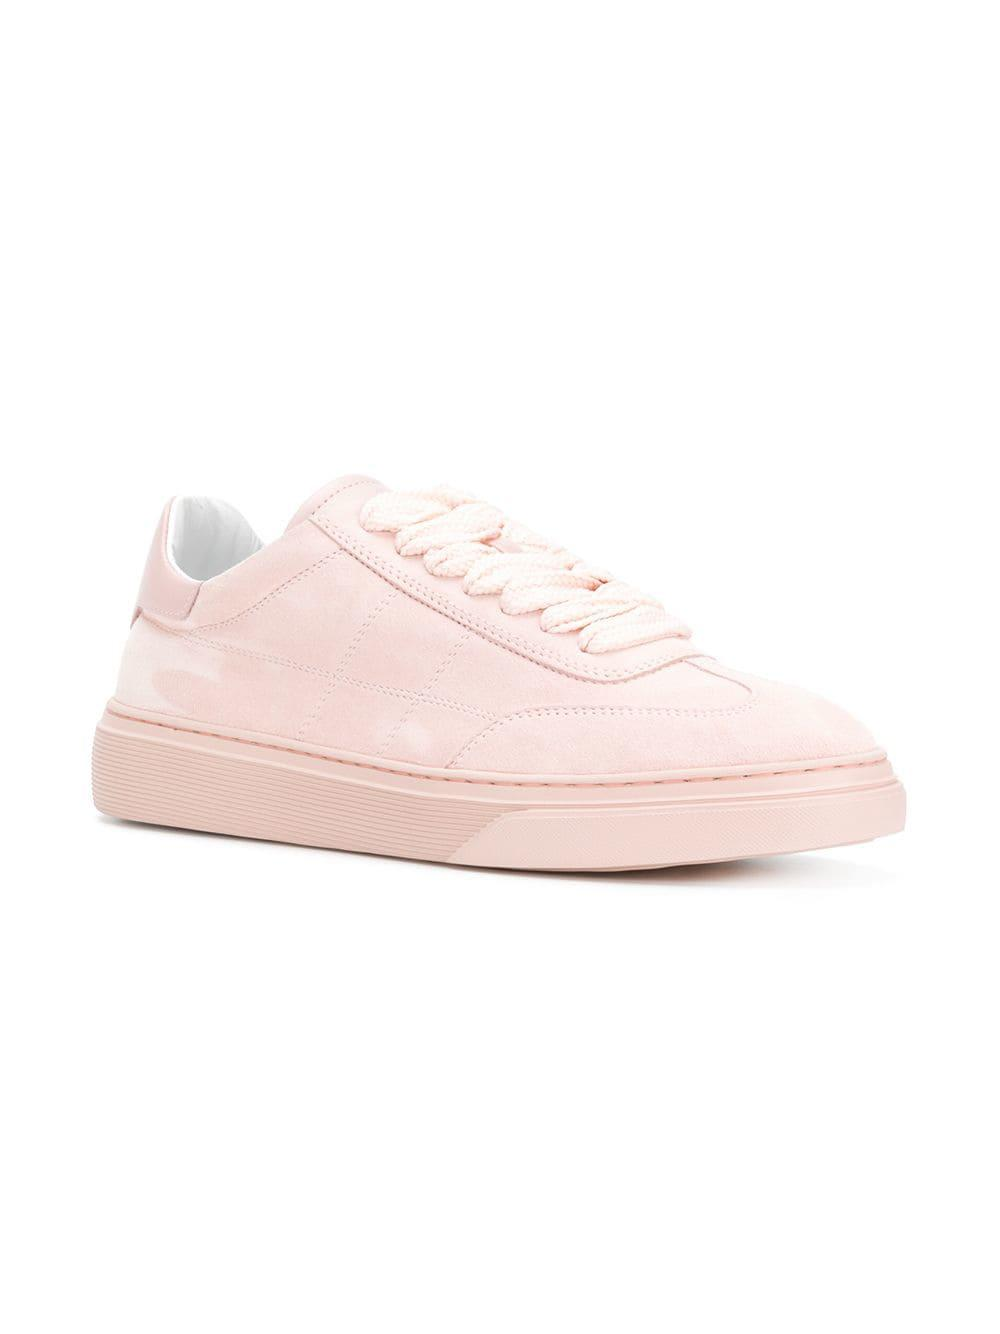 23fd1993c9 Lyst - Hogan Stitched Detailing Lace-up Sneakers in Pink - Save 12%